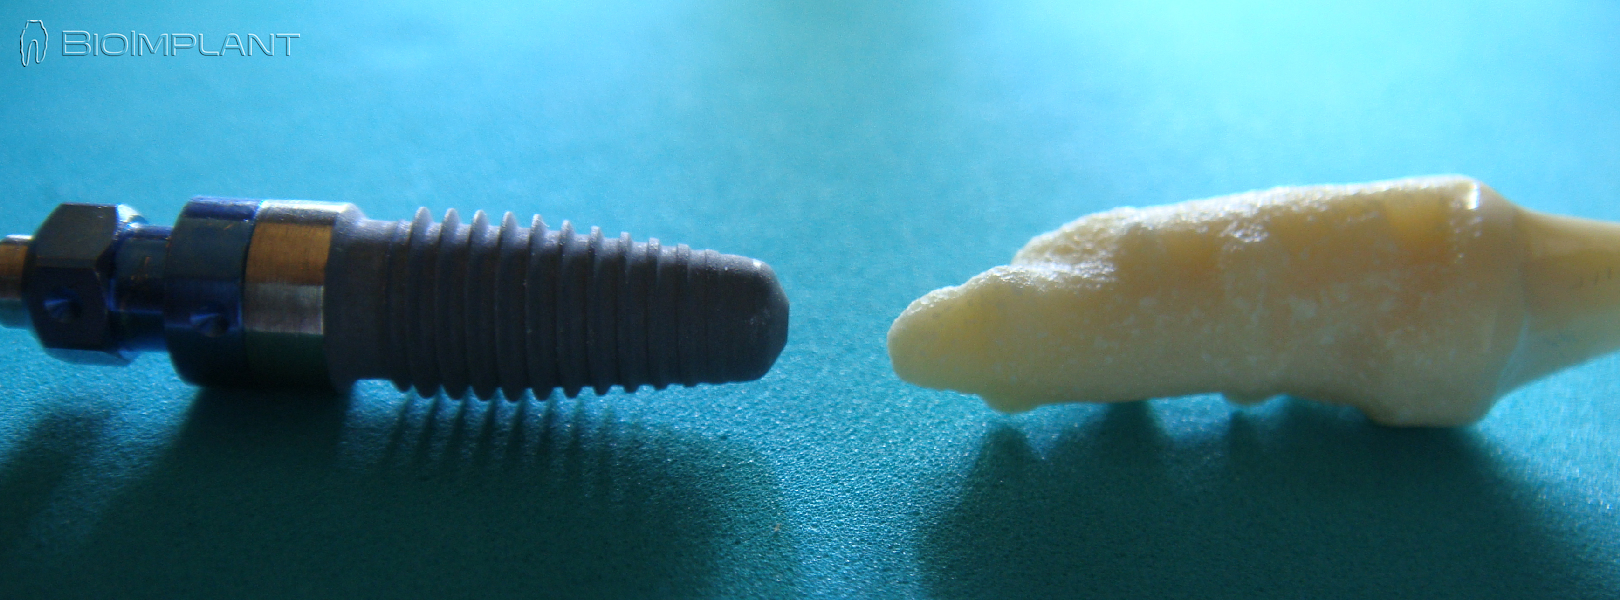 root analogue ceramic dental implant